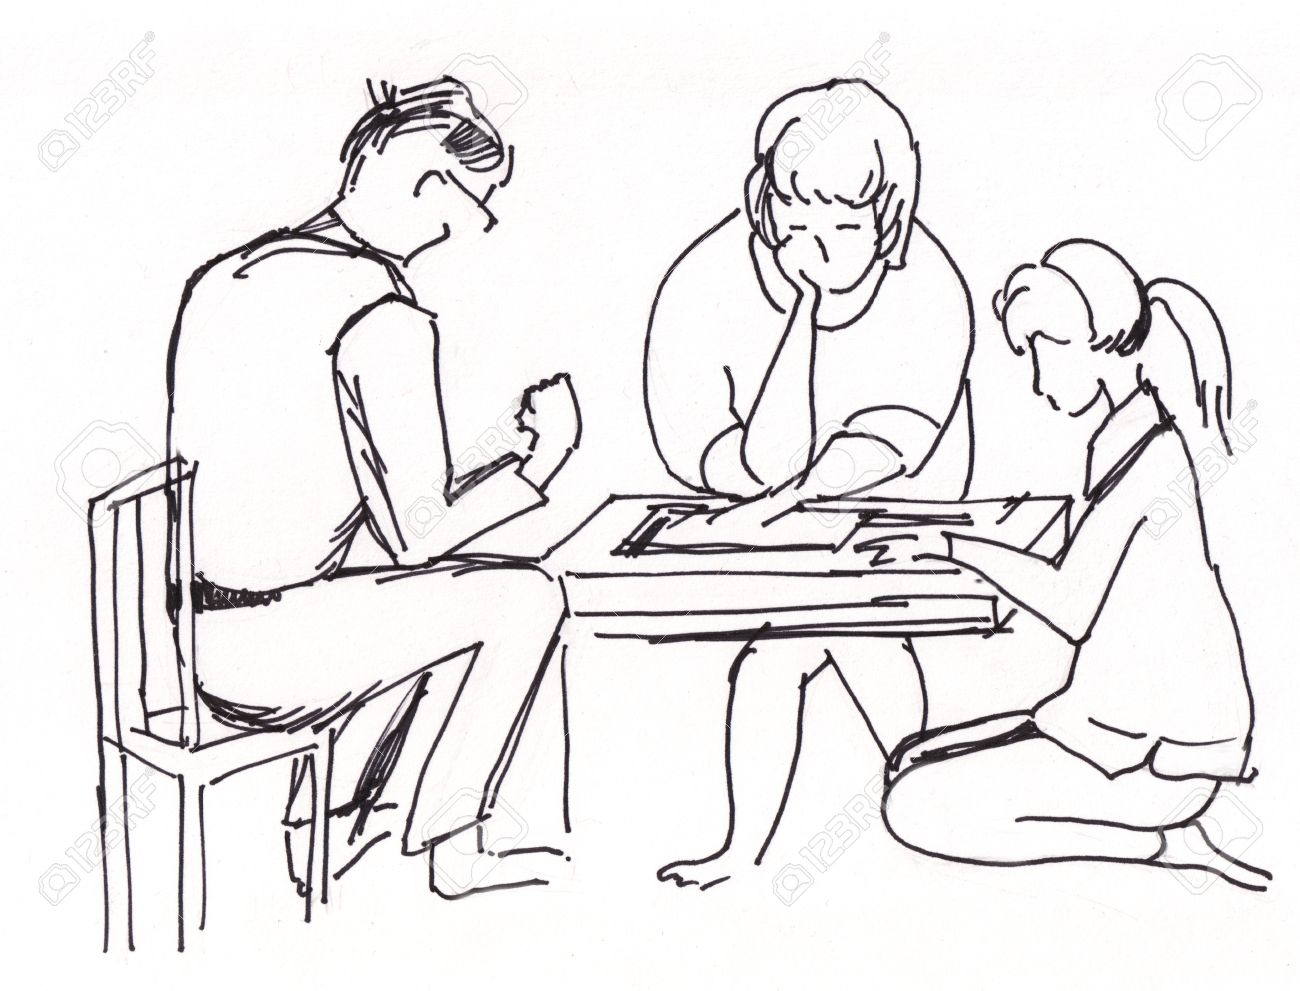 1300x991 Instant Sketch, Family Play In Board Game Stock Photo, Picture